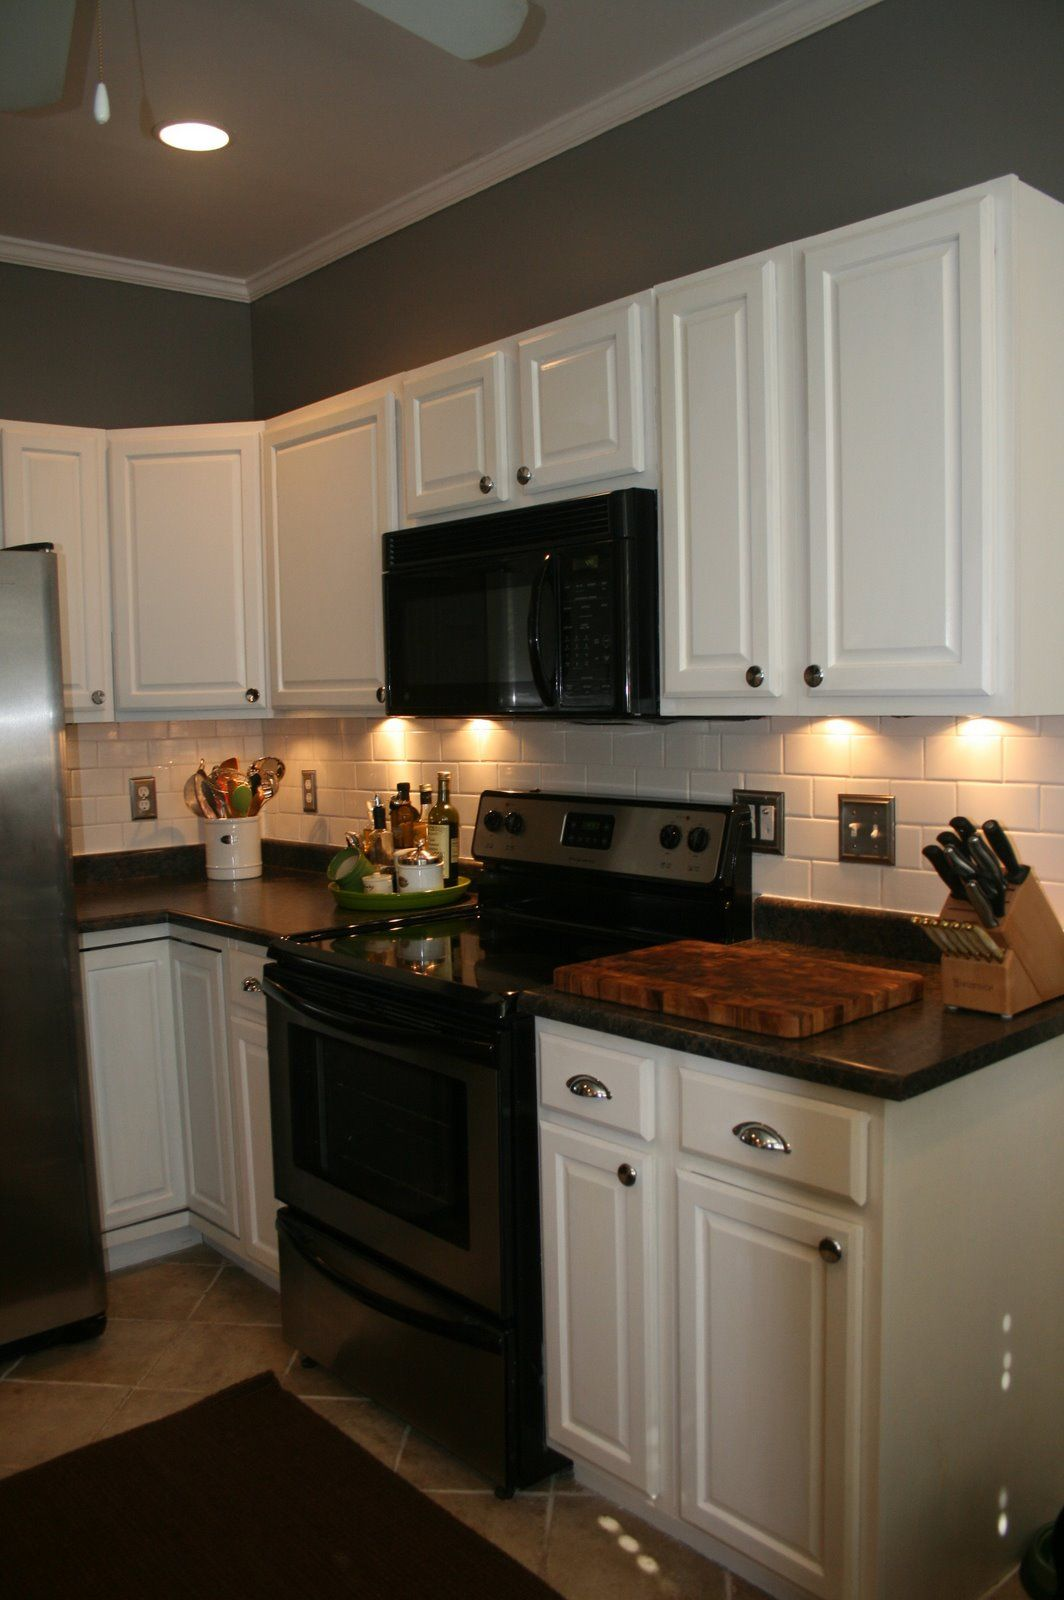 Black Kitchen Walls White Cabinets paint oak cabinets white. i don't usually like white cabinets but